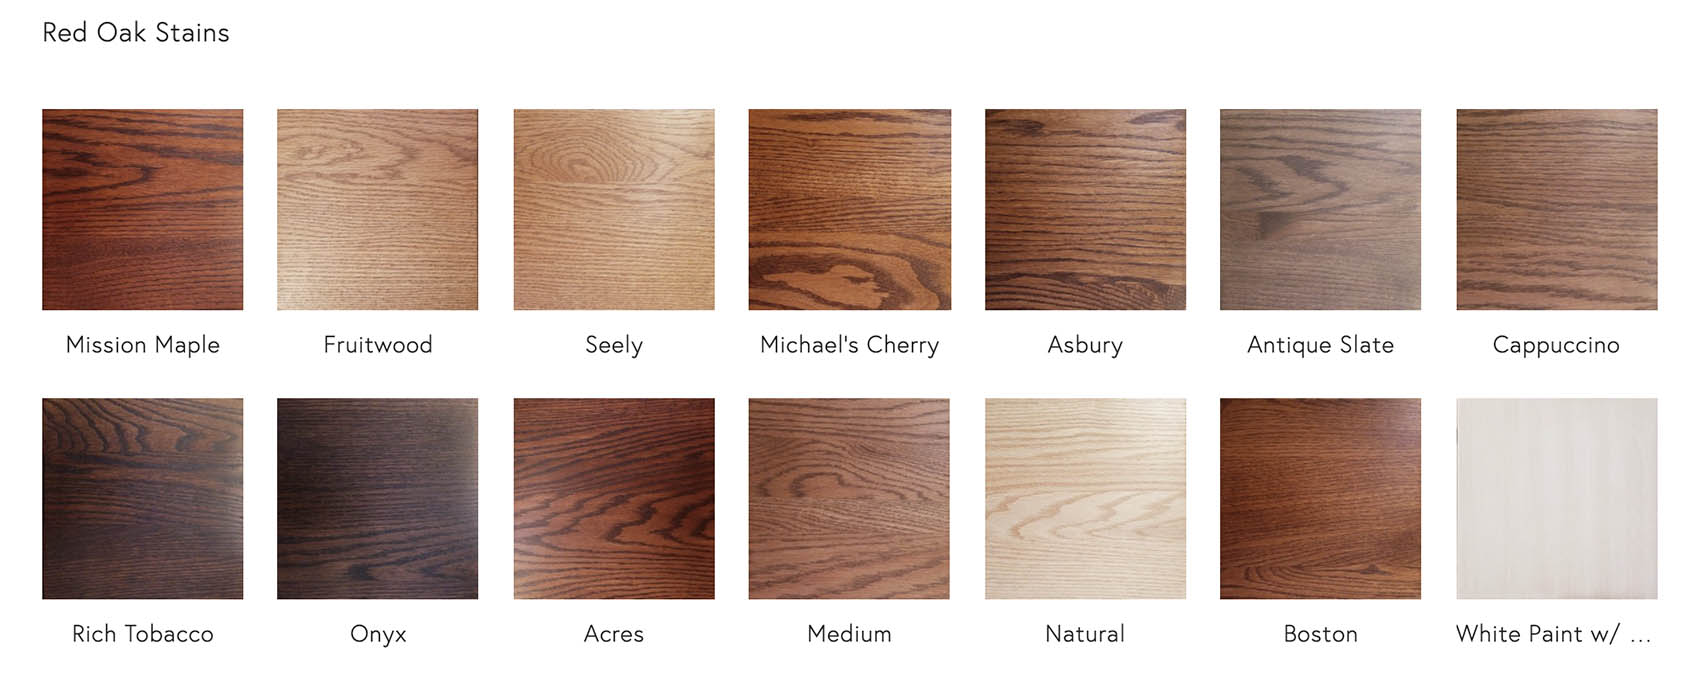 Red Oak Stains